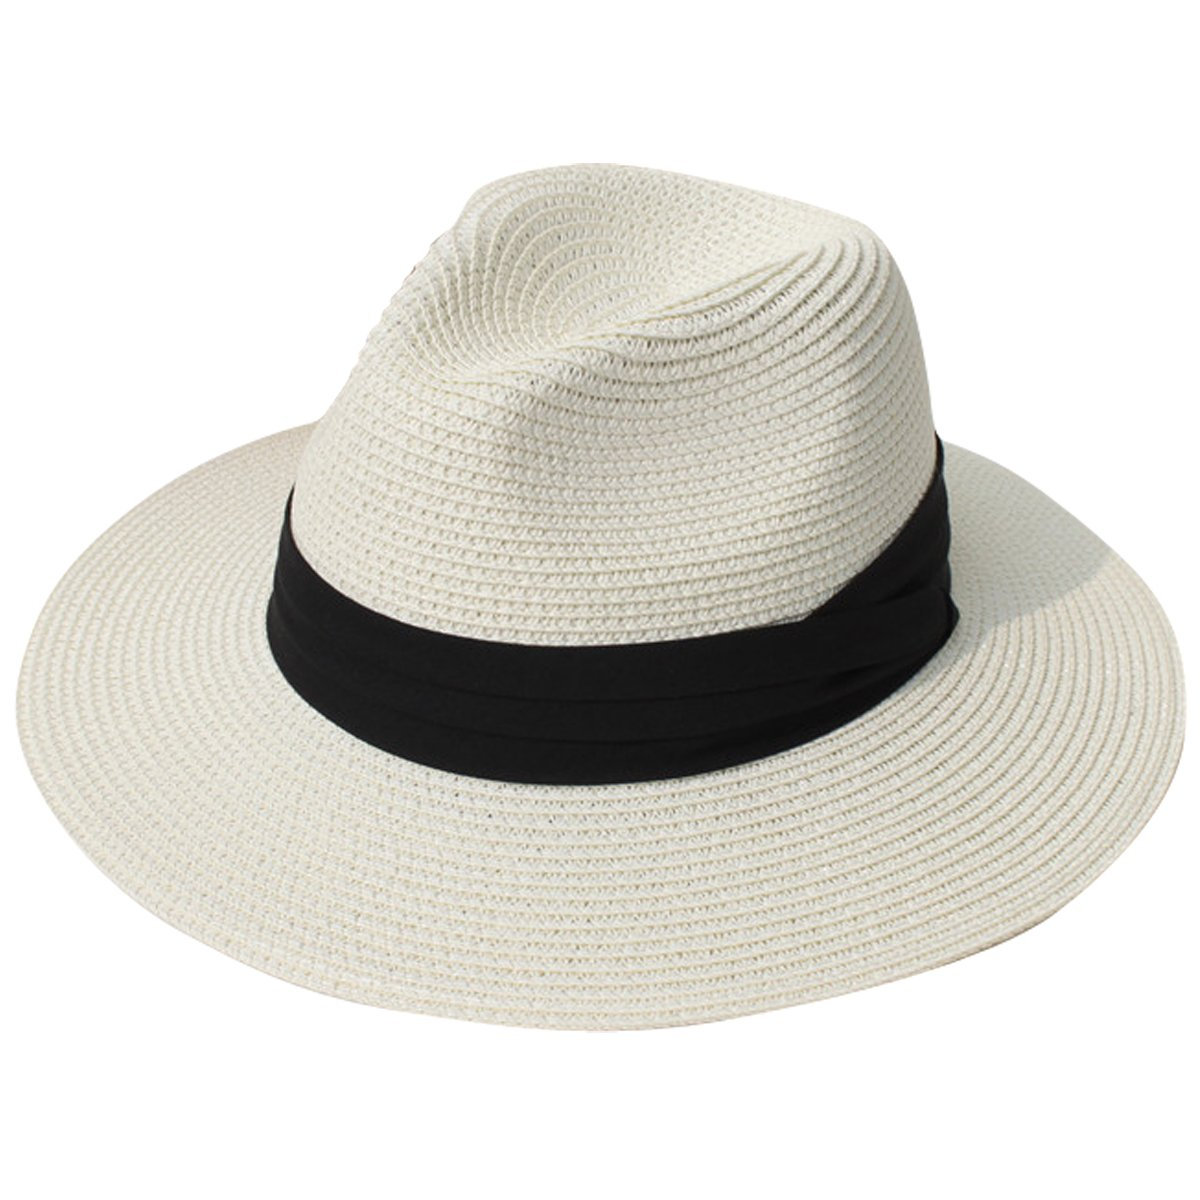 2b7c3a8f05bbf Amazon.com  JOYEBUY Womens UPF50 Foldable Summer Straw Hat Wide Brim Fedora  Sun Beach hat (Beige)  Clothing